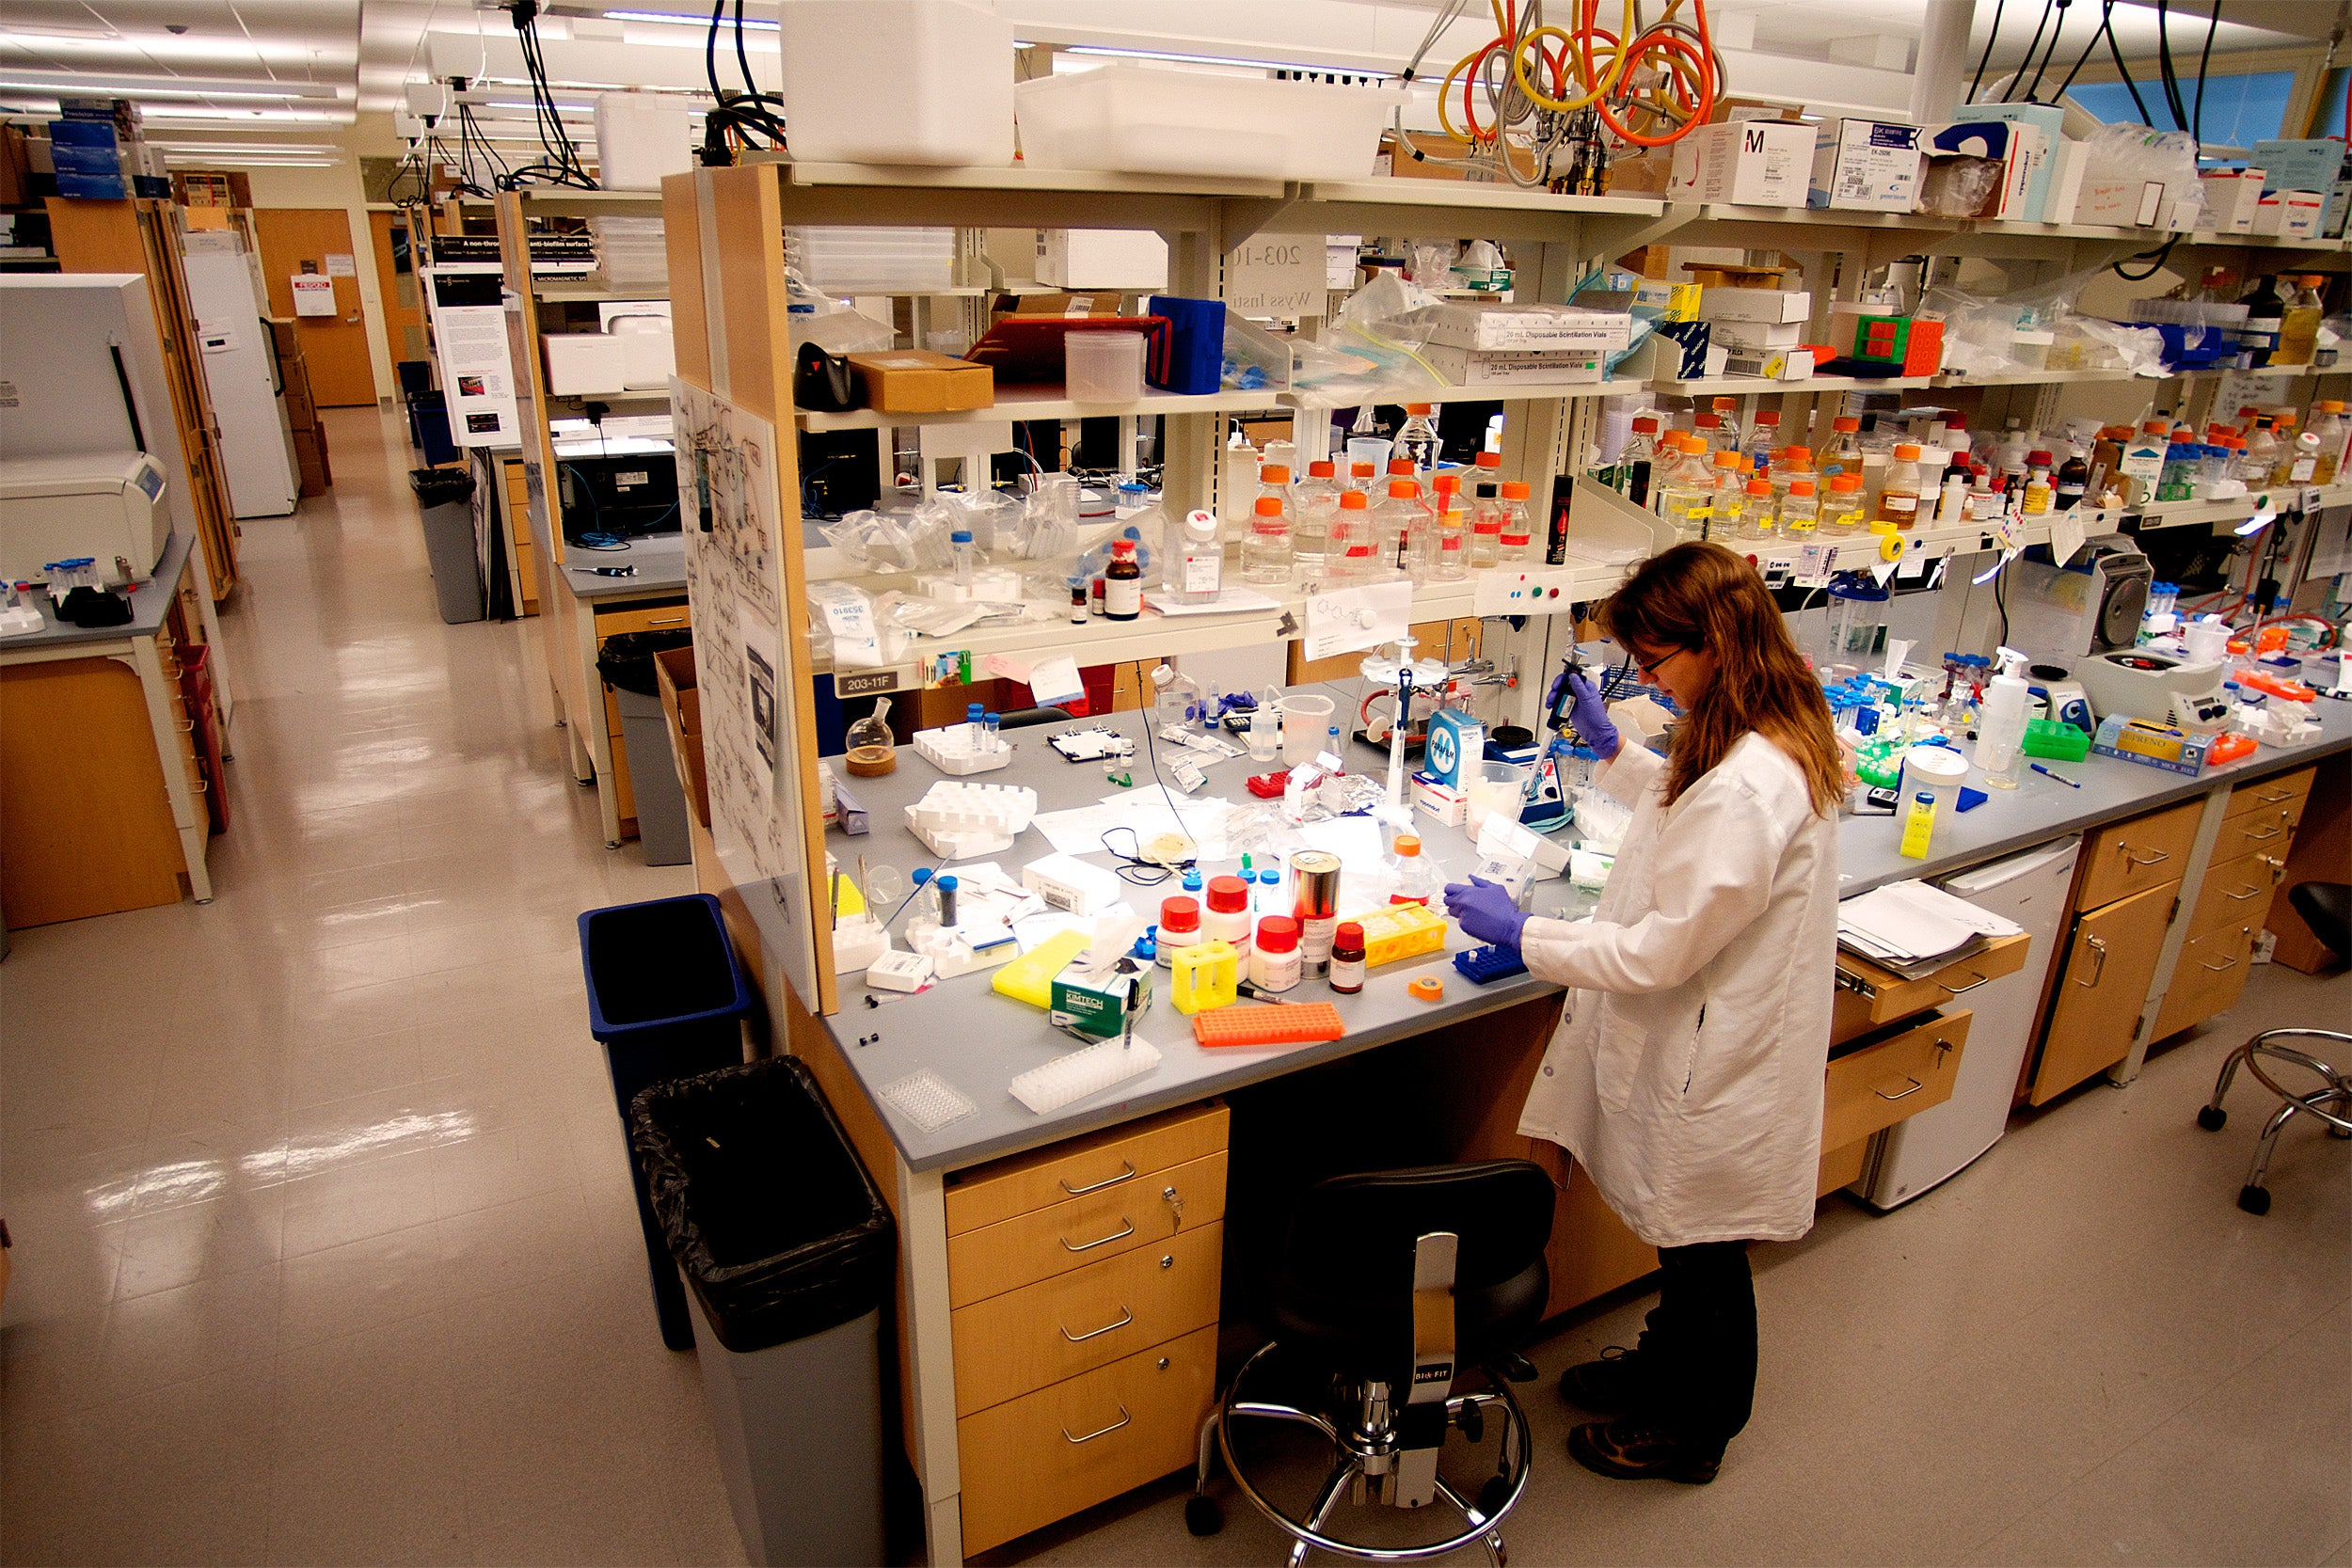 Woman working in lab.